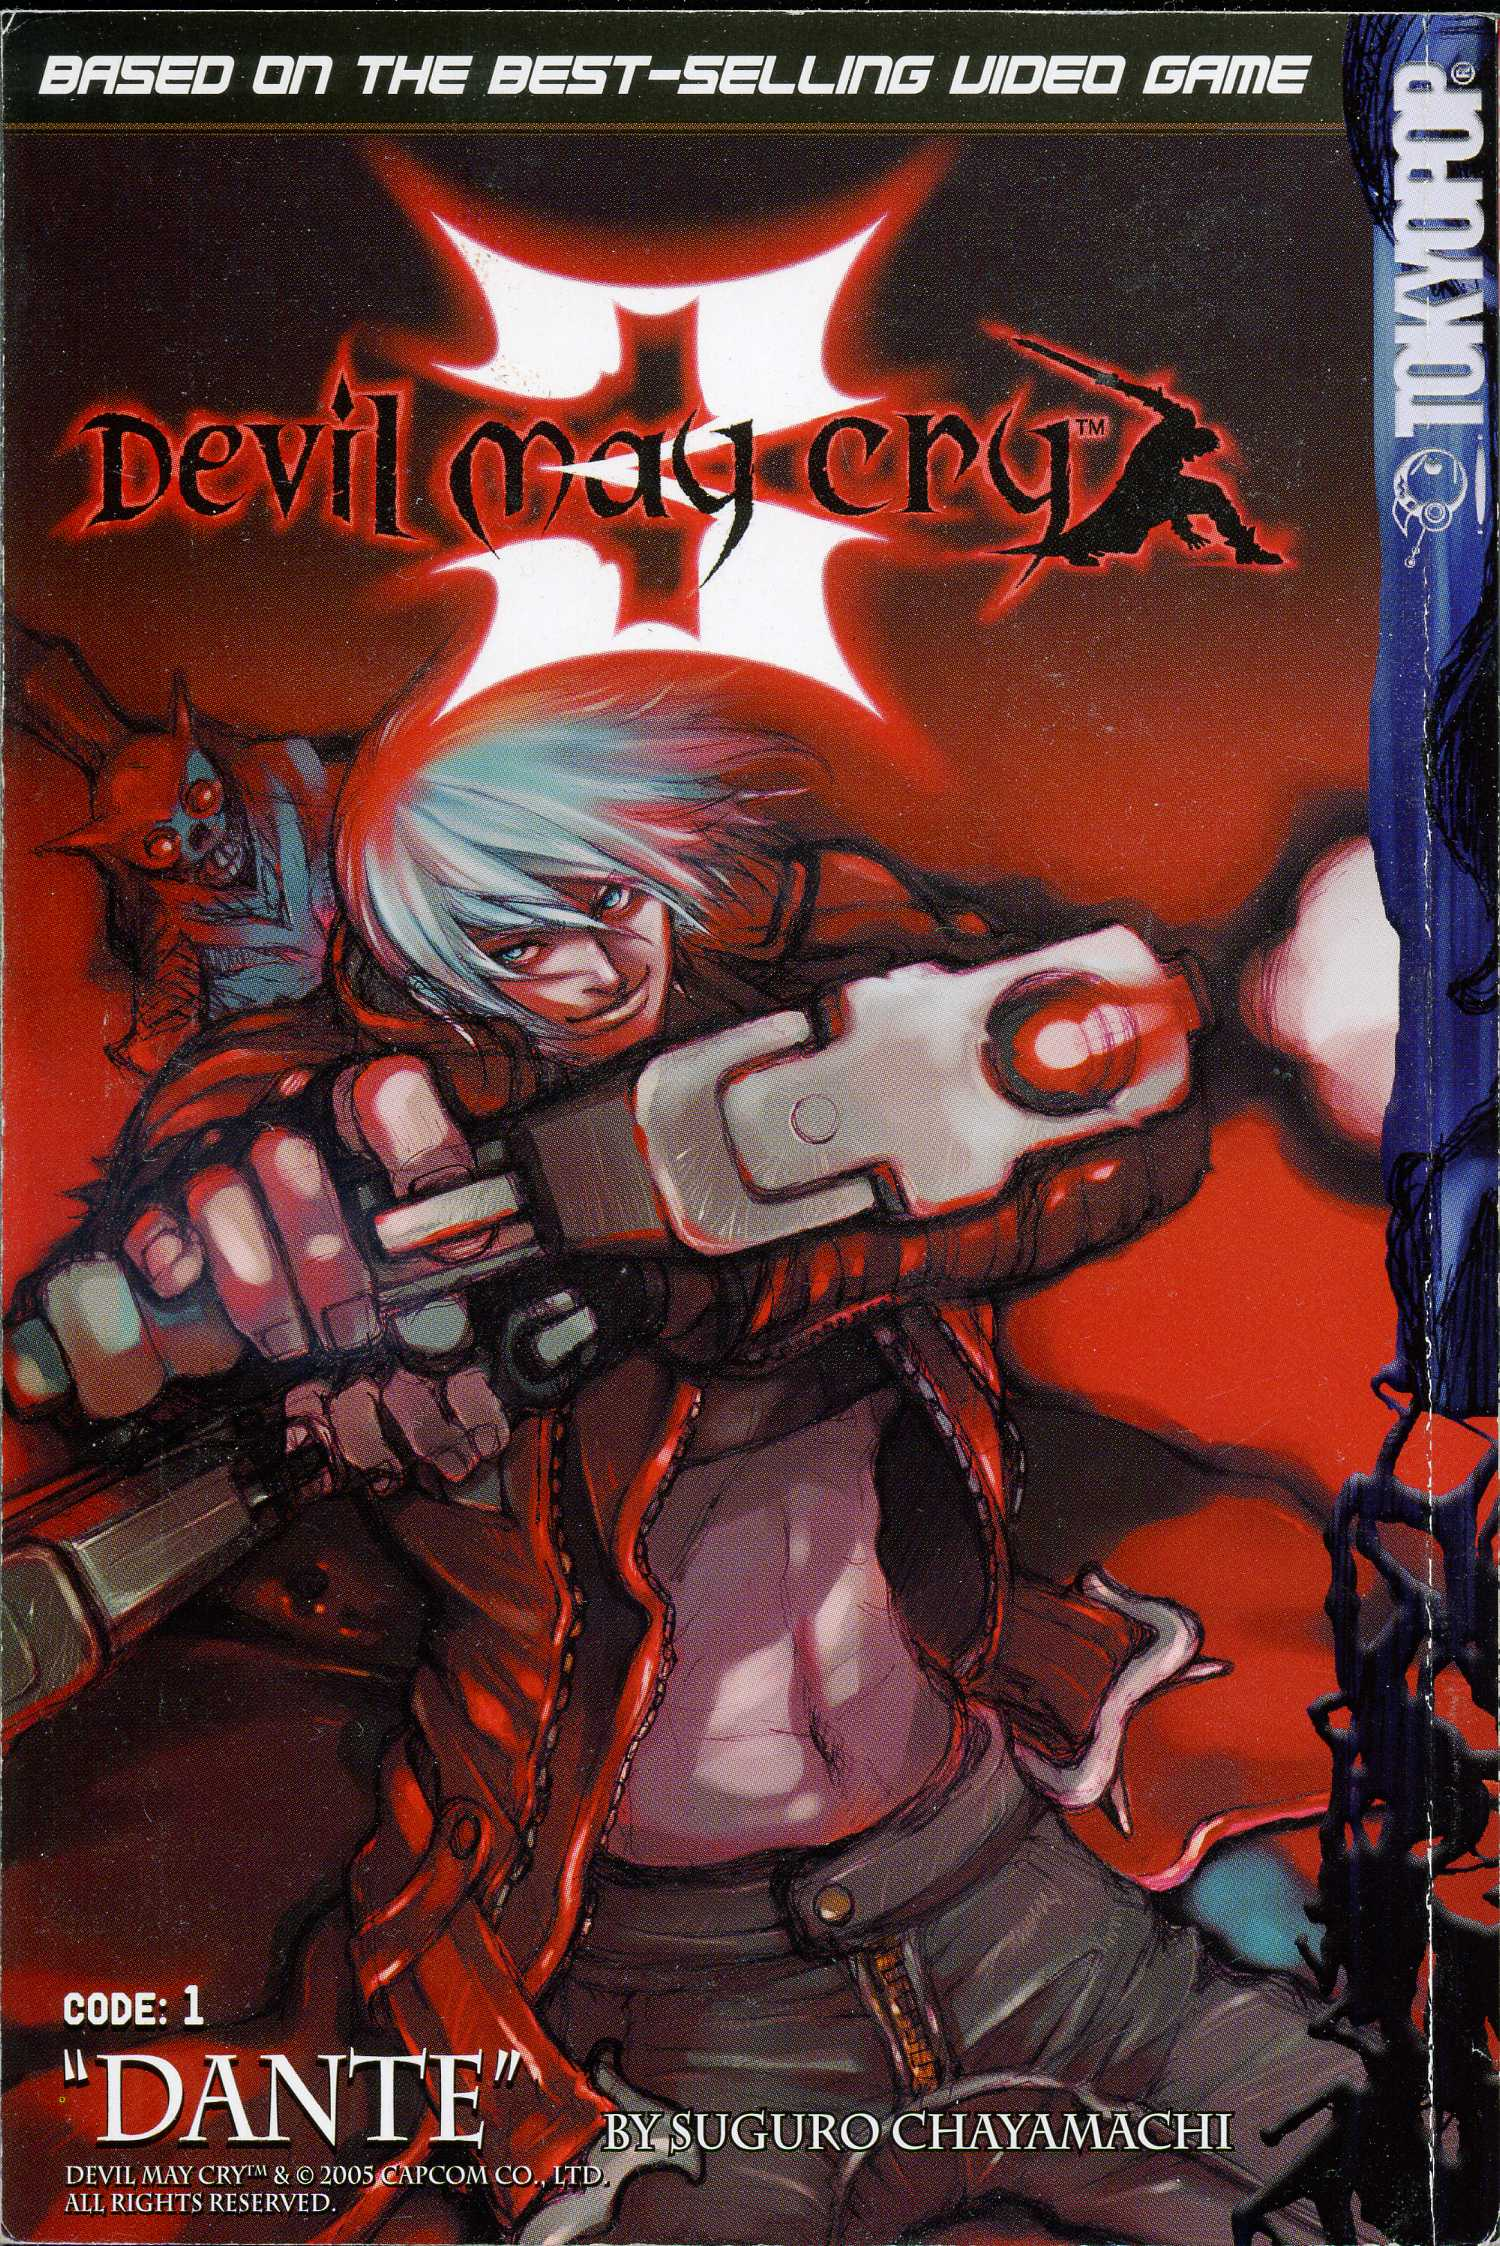 Dmc3 manga dante